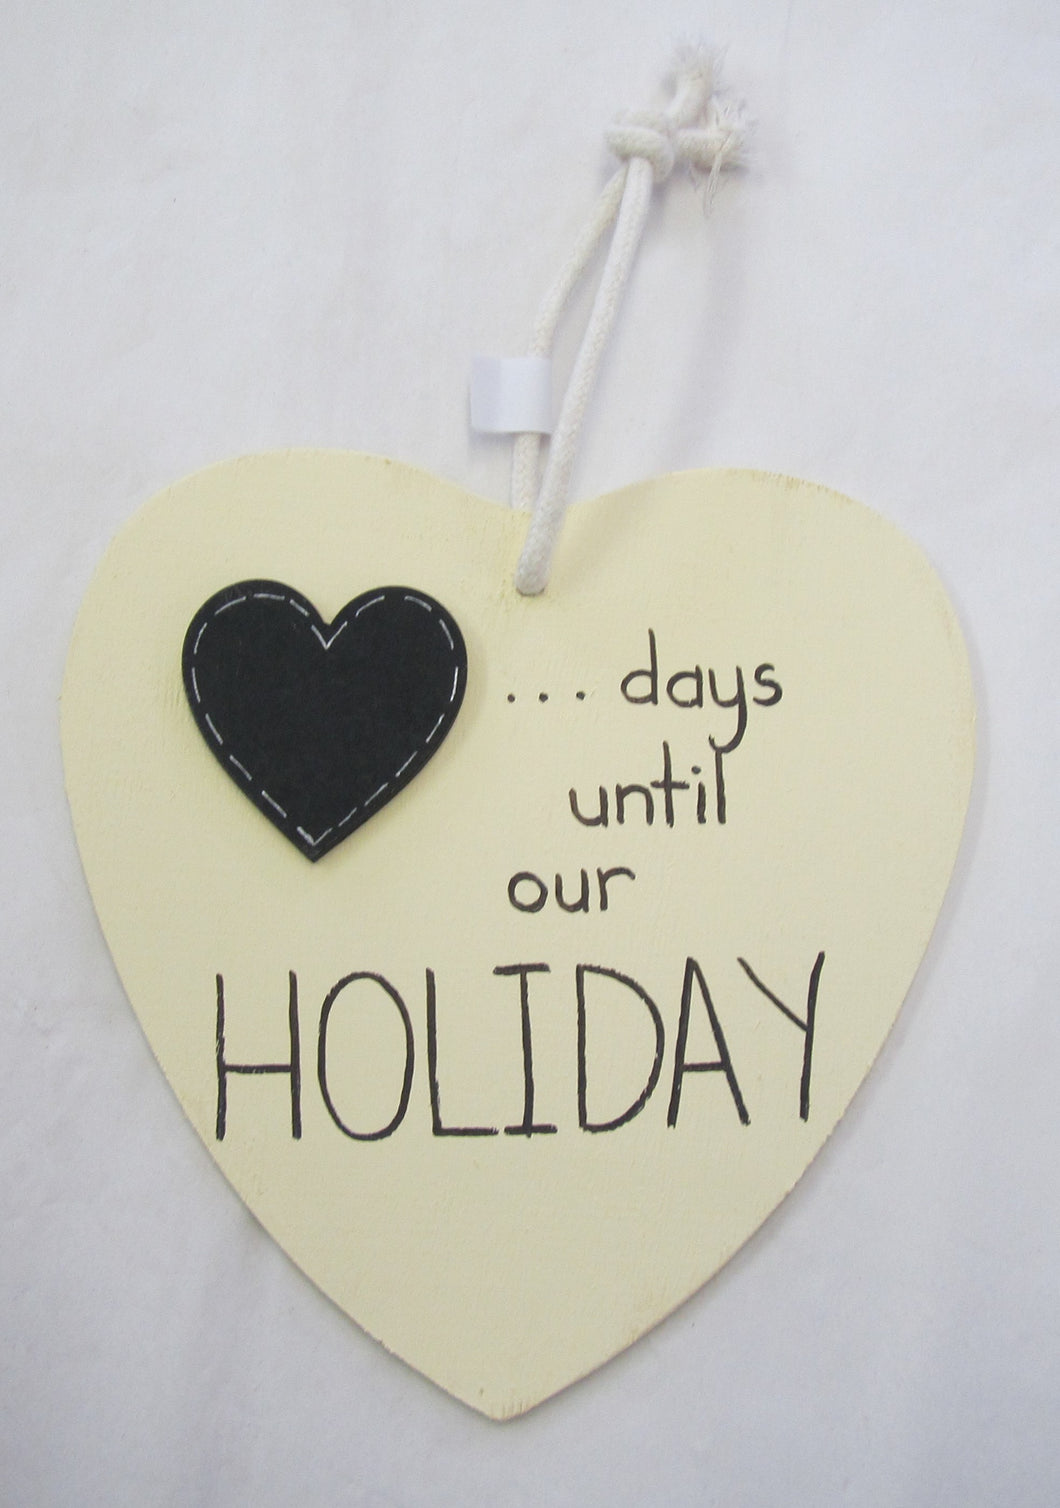 Beautiful handcrafted heart - days until our holiday